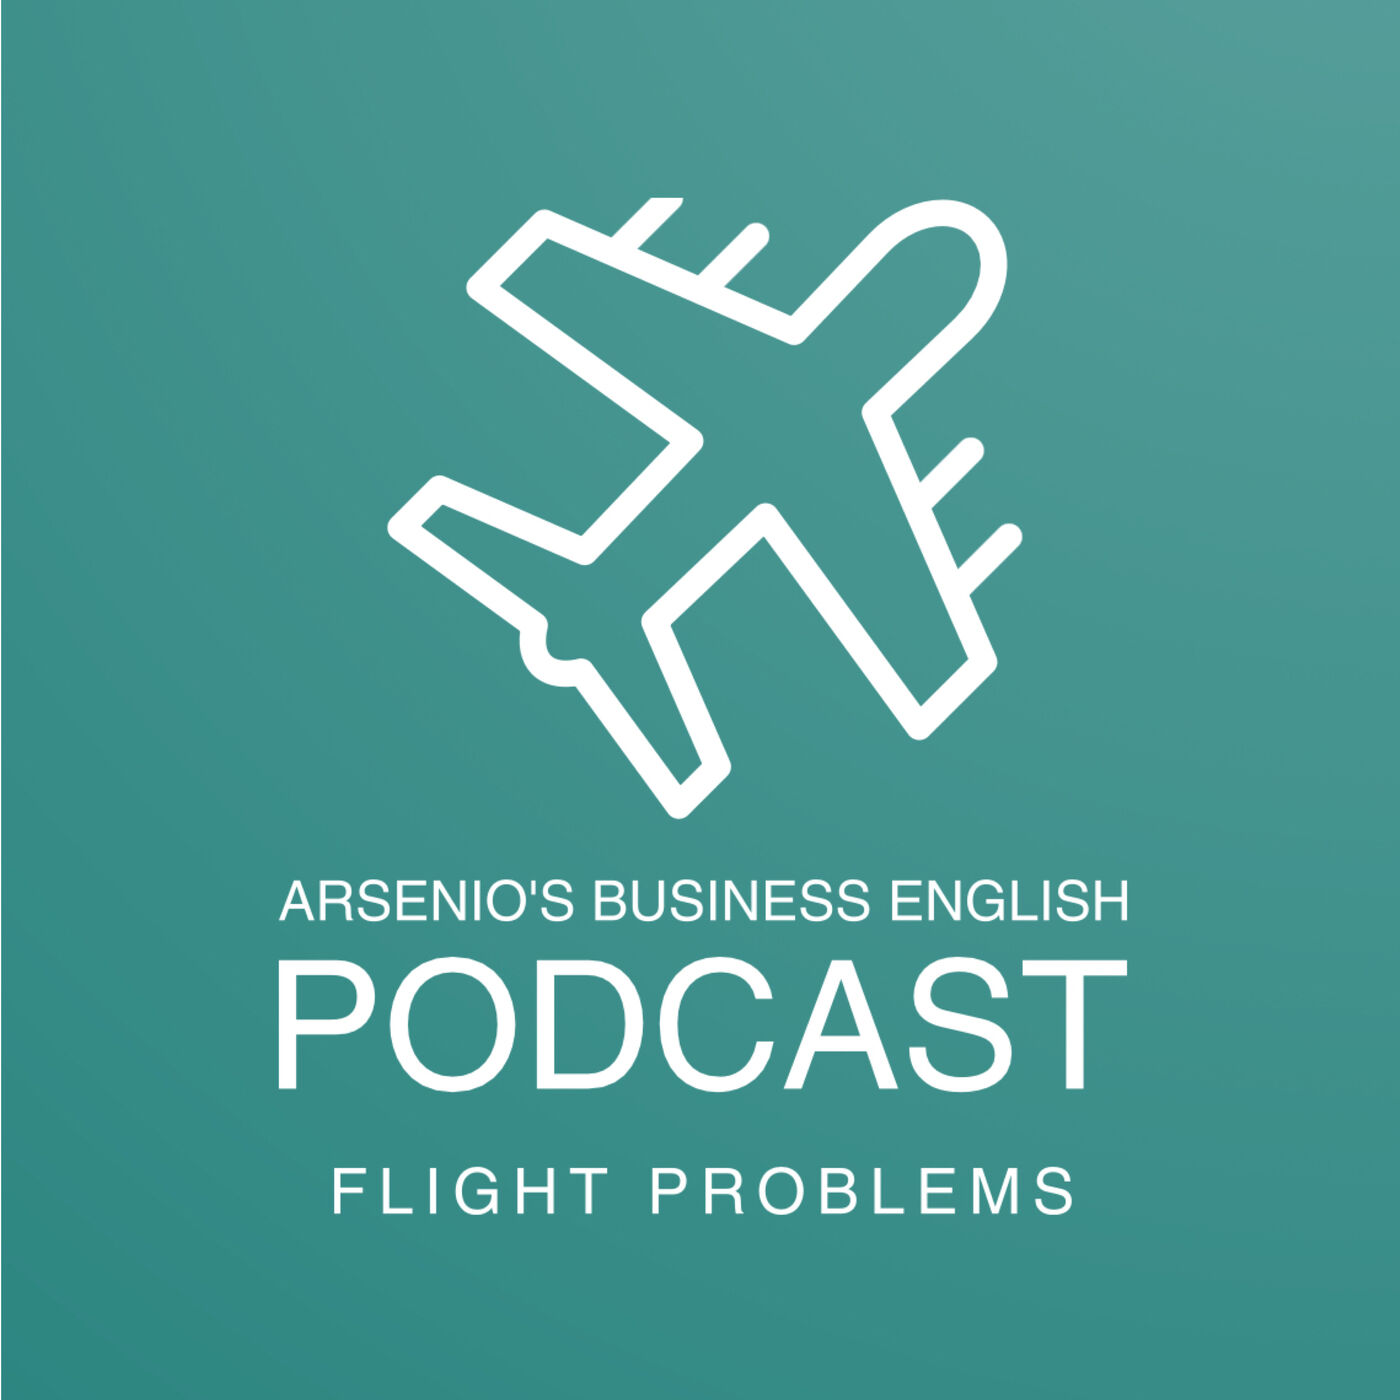 Arsenio's Business English Podcast | Season 6: Episode 32 | Flight Problems & What To Do